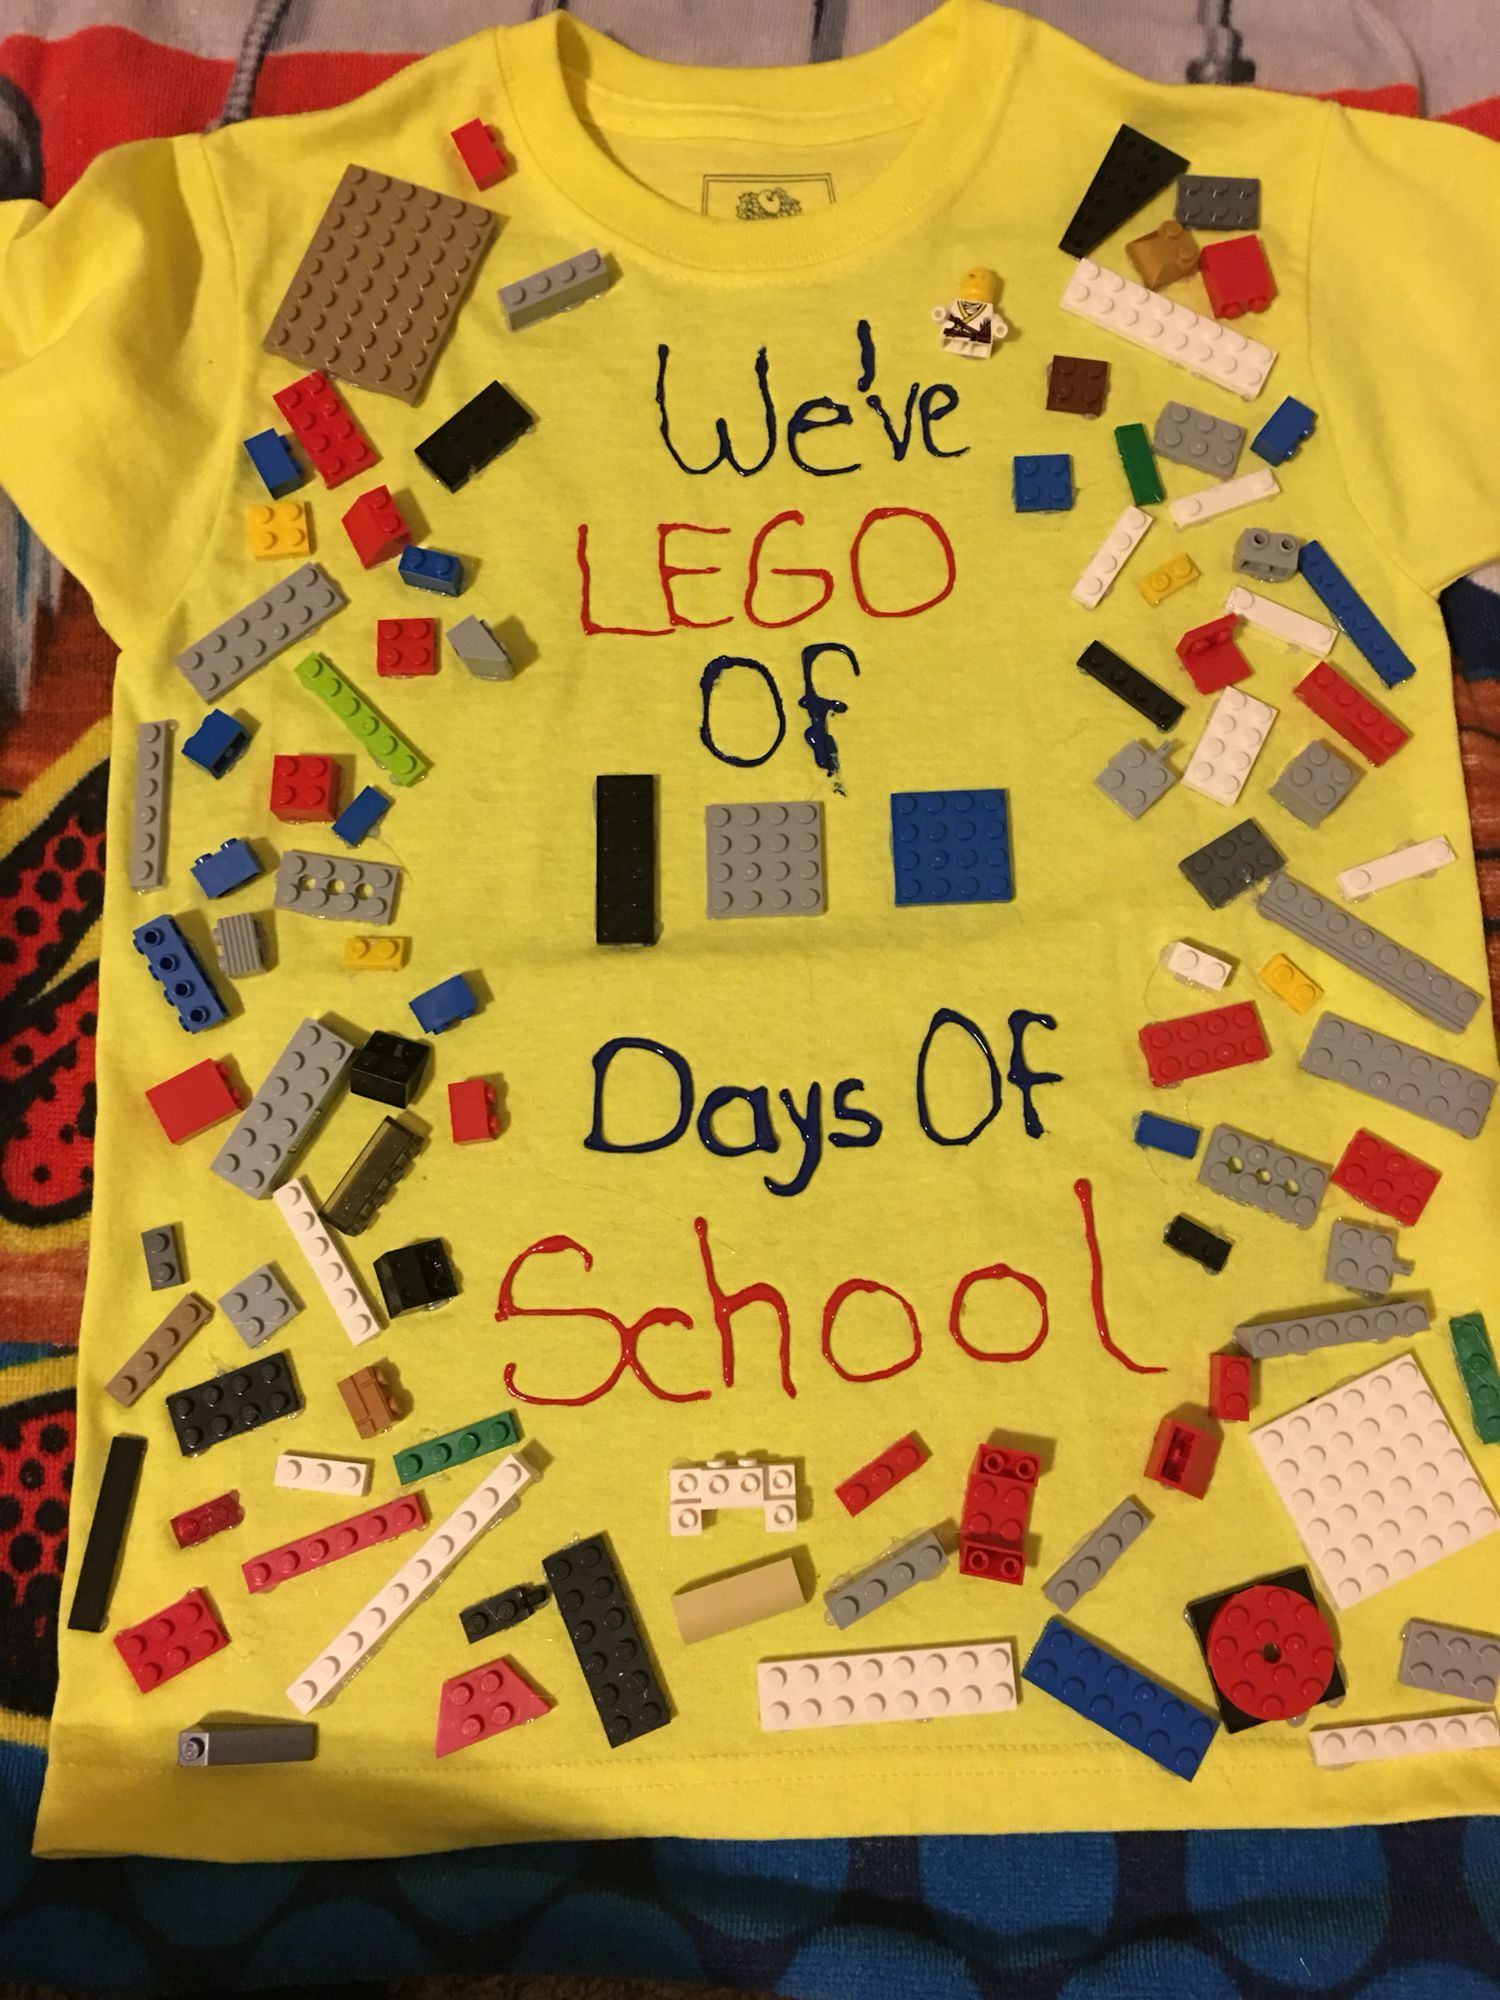 to celebrate the 100th day of school students were supposed to